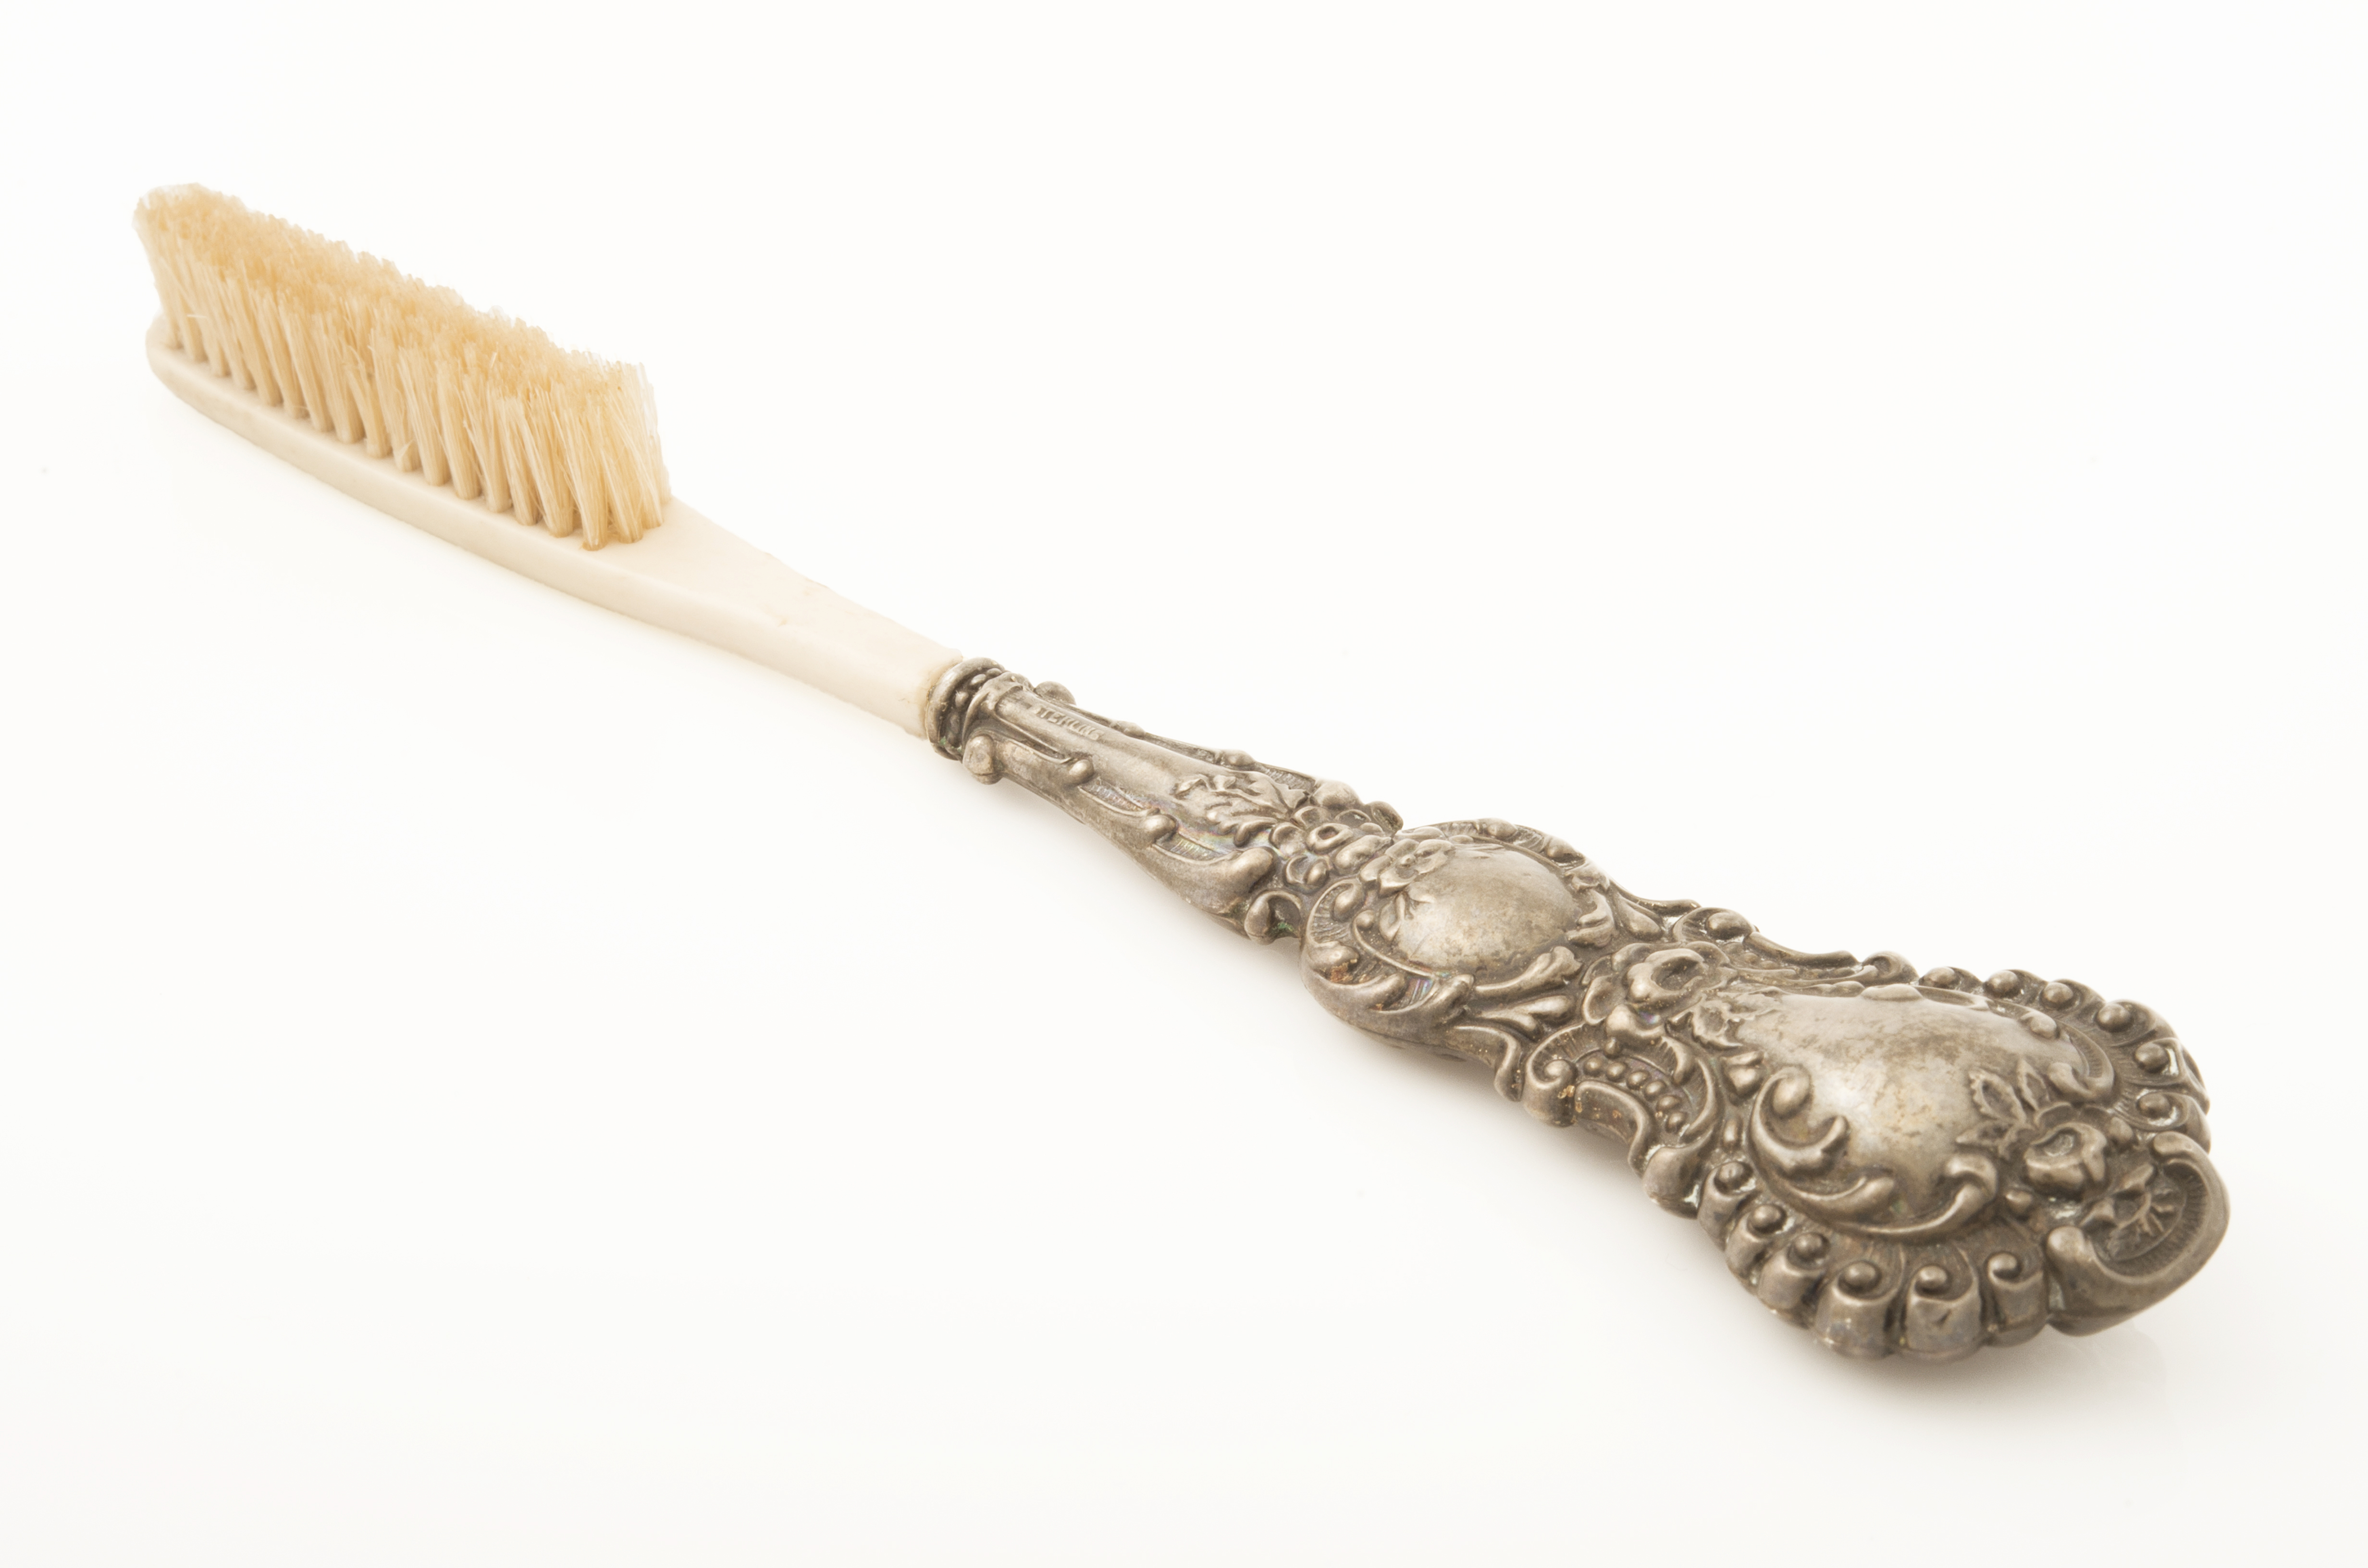 Victorian-era French toothbrush